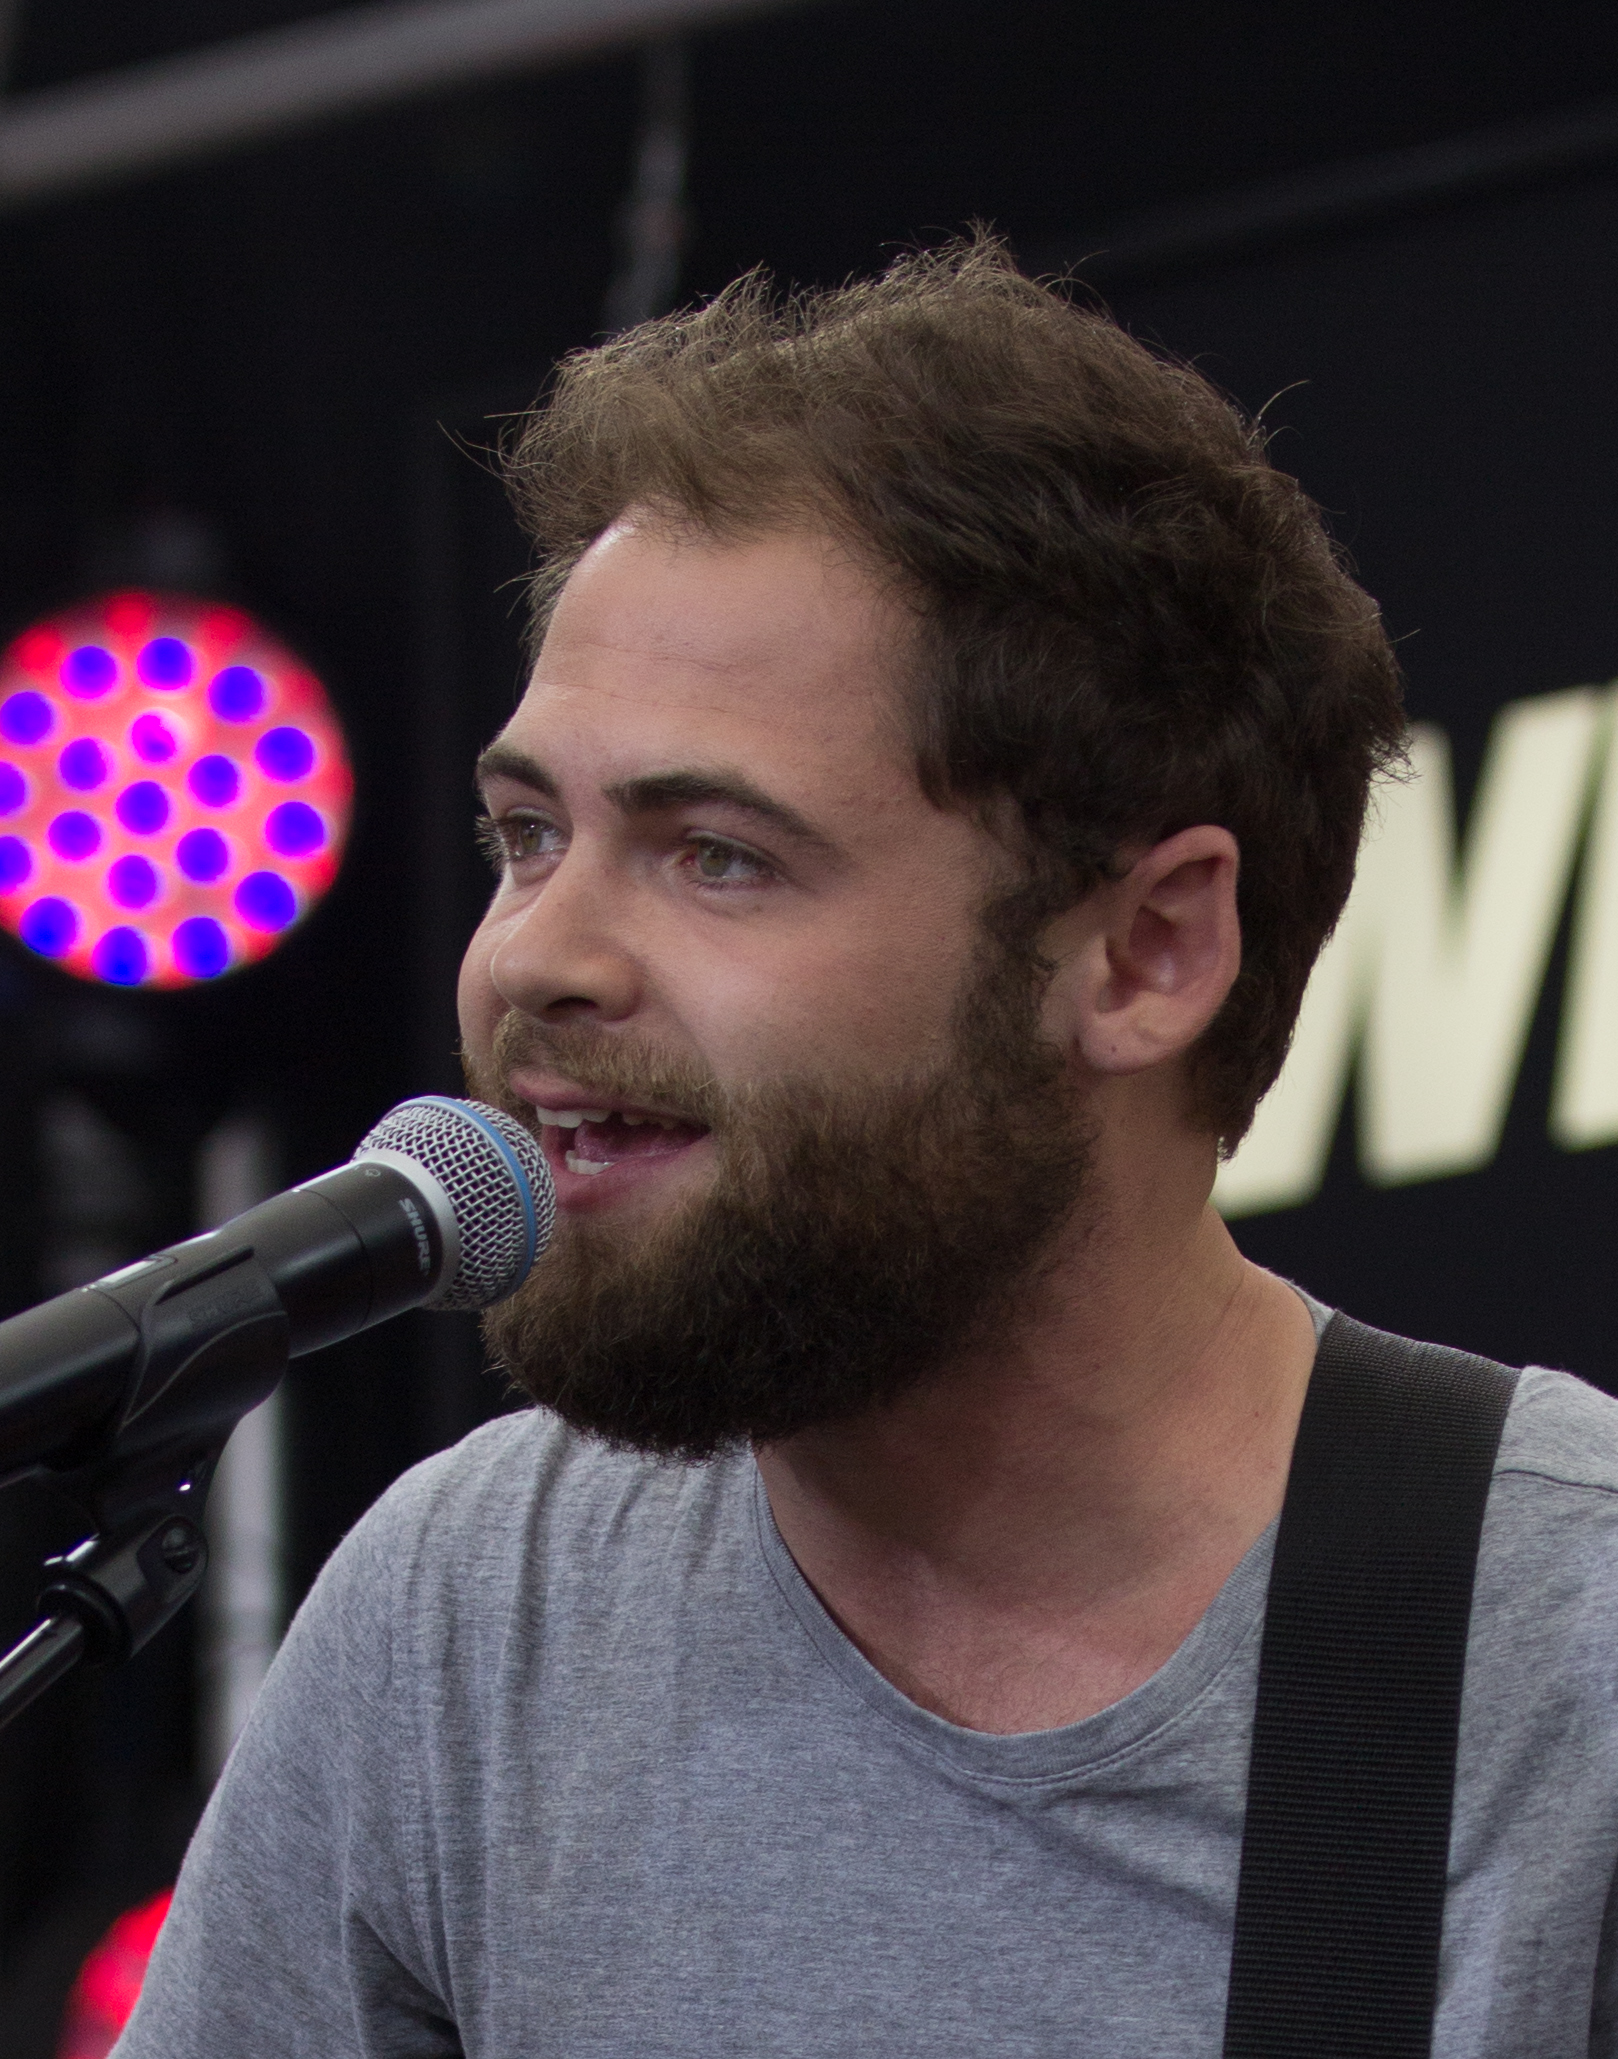 Passenger at the SWR3 New Pop Festival in Baden-Baden 2013